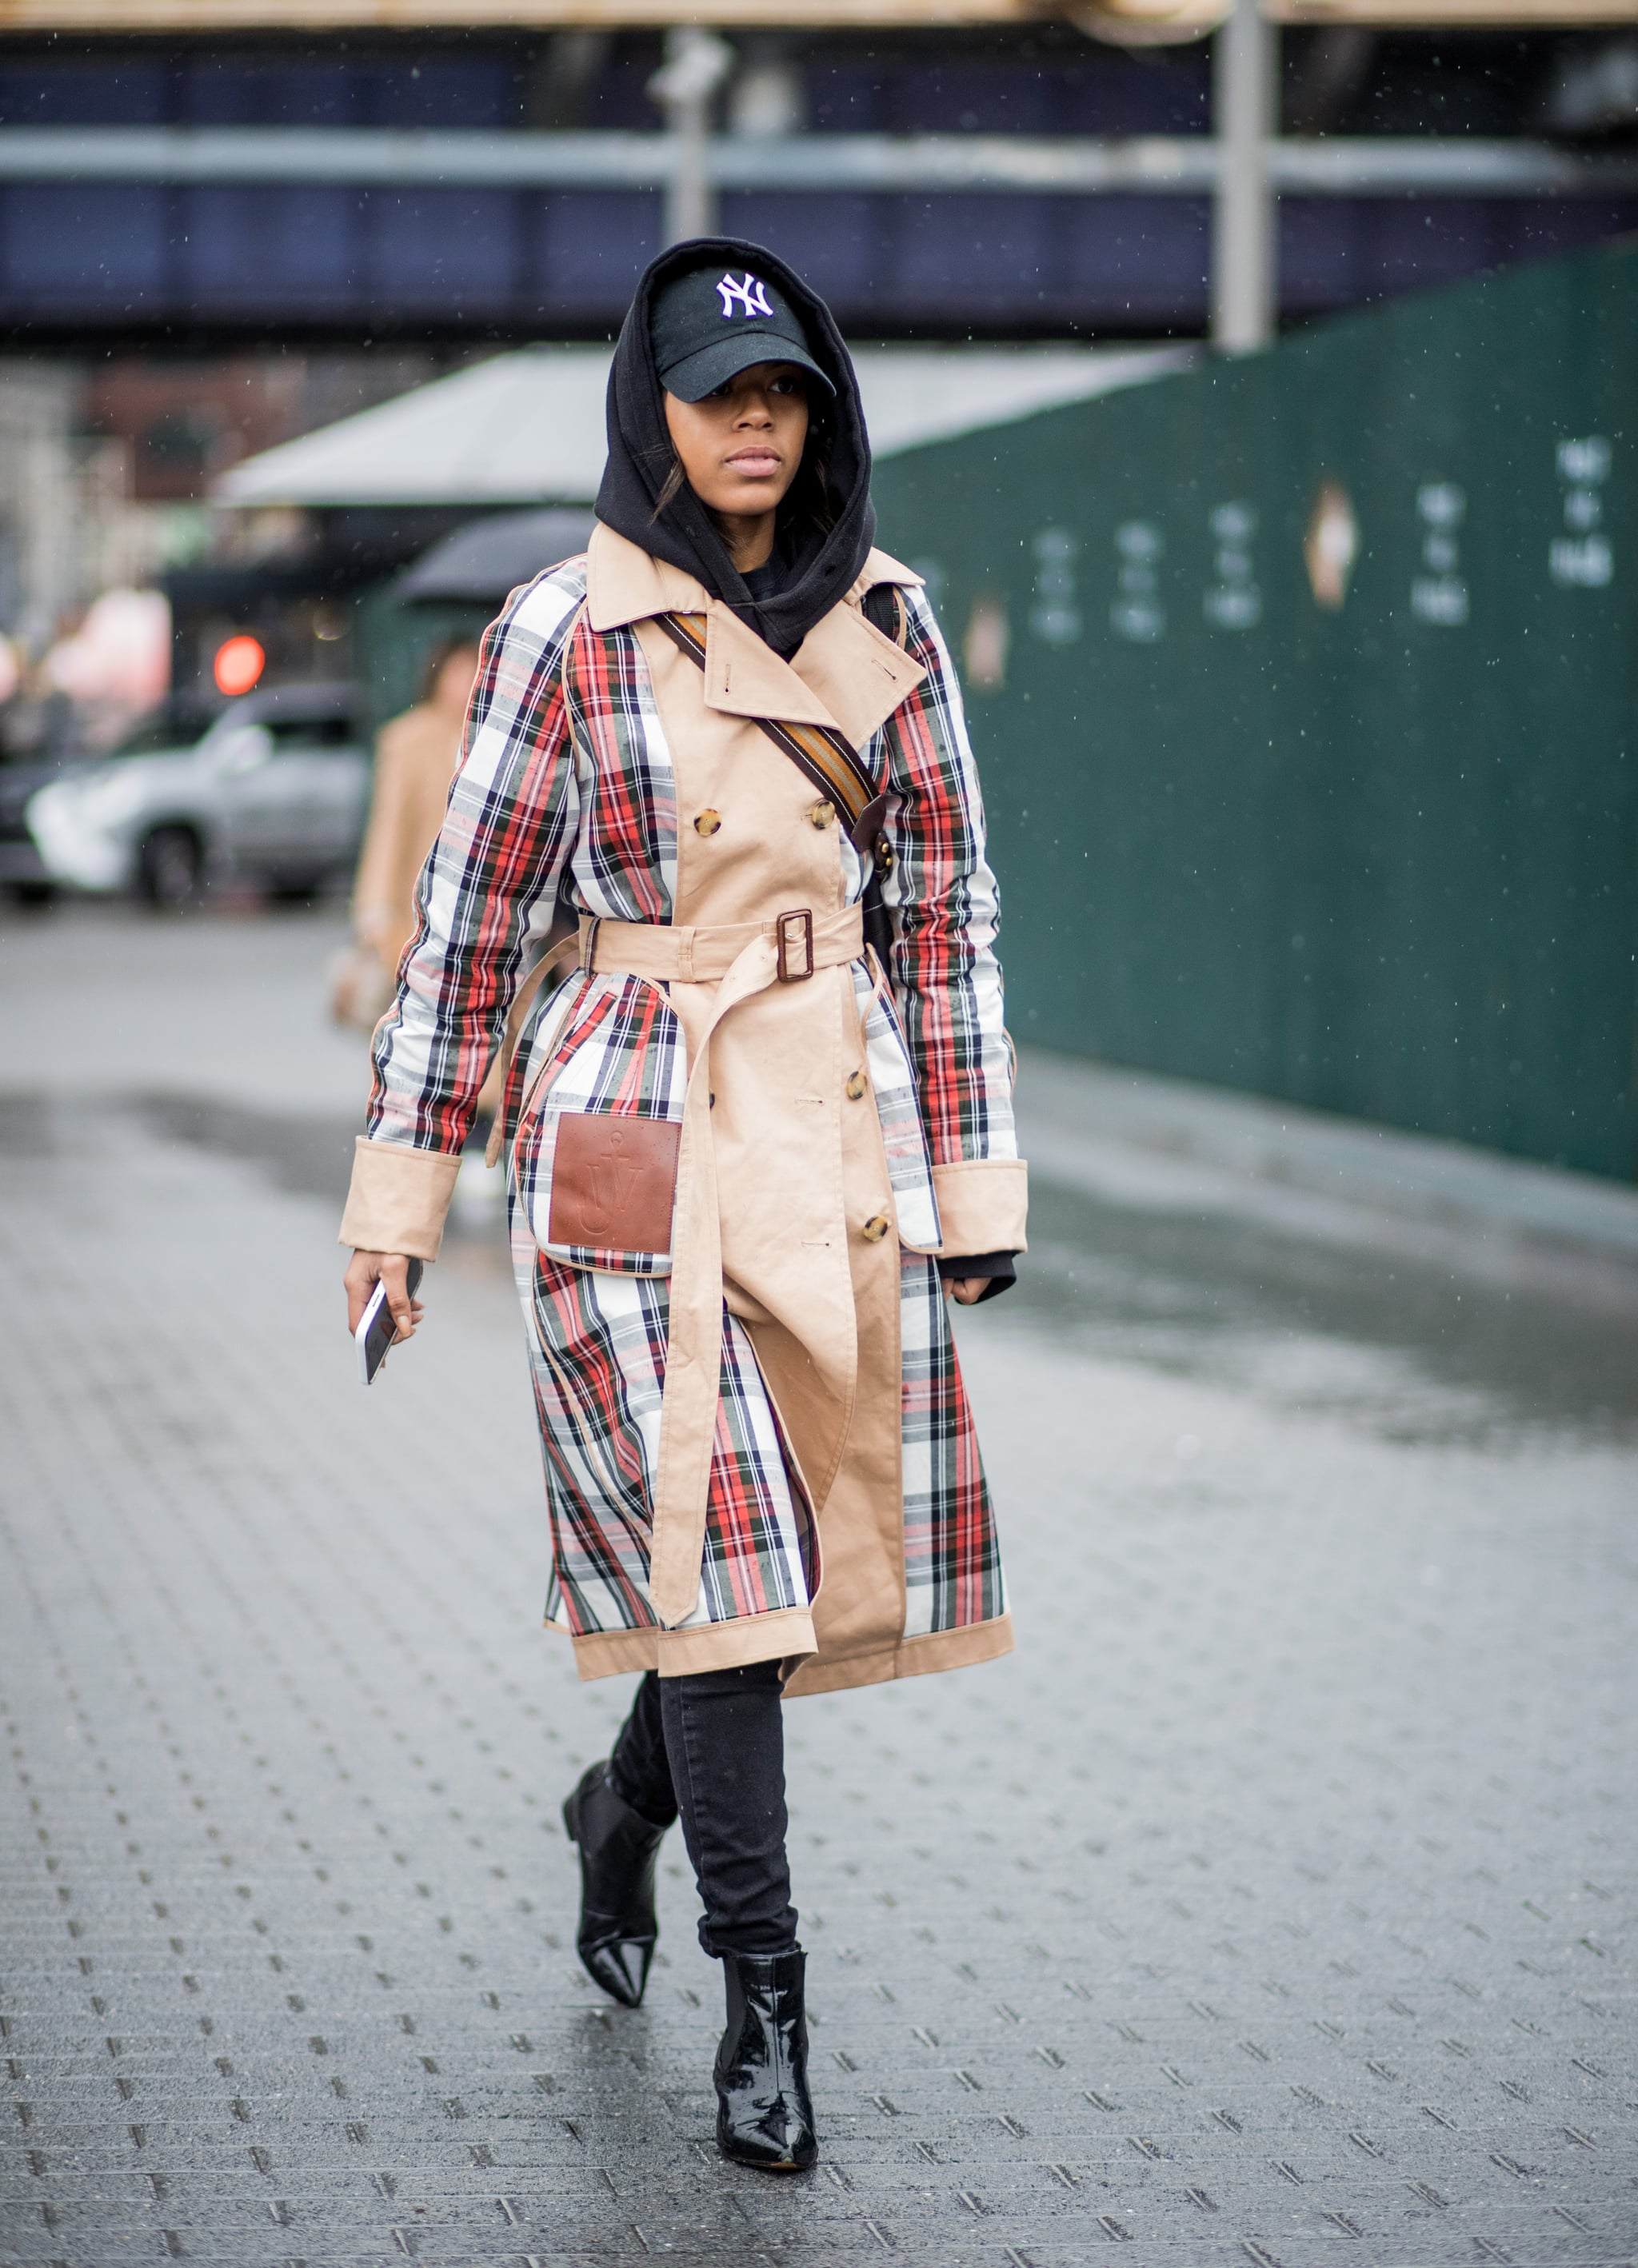 NEW YORK, NY - FEBRUARY 11: A guest wearing plaid J.W. Anderson trench coat seen outside Tibi on February 11, 2018 in New York City. (Photo by Christian Vierig/Getty Images)